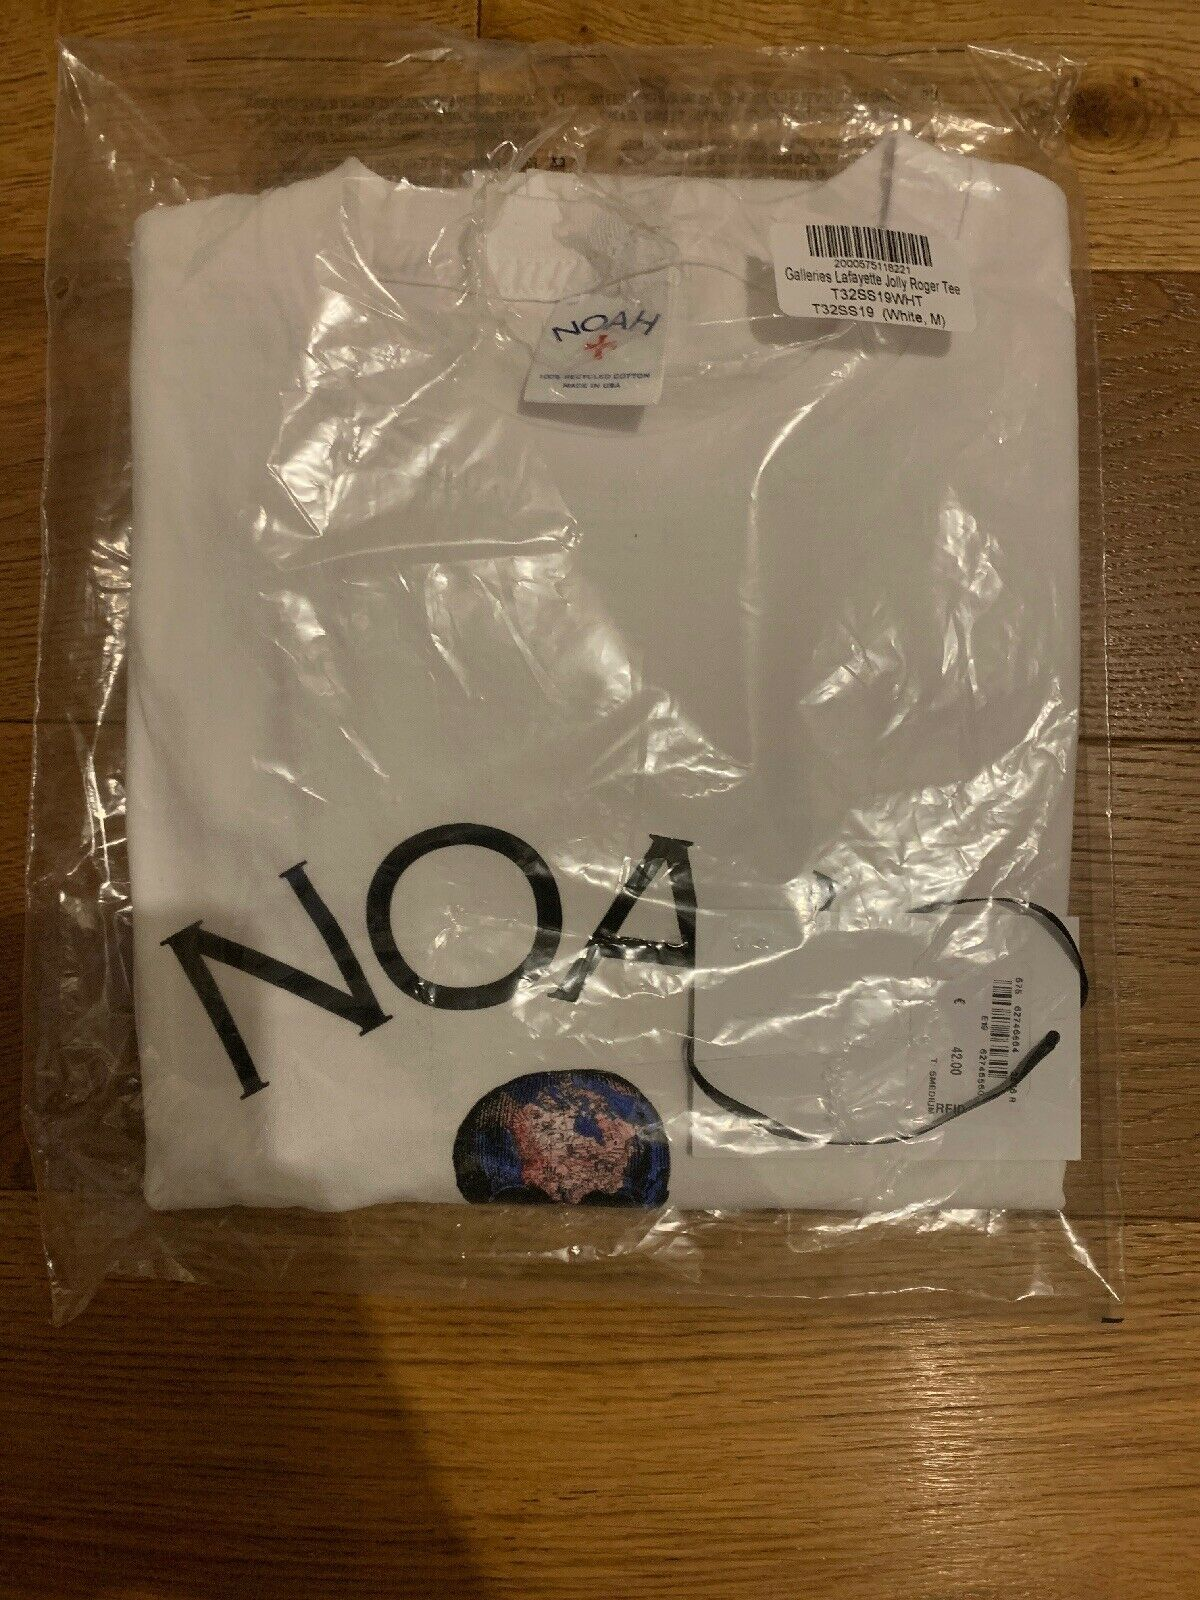 Noah NY x Galeries Lafayette Logo Tee Sz M Weiß Core Hoodie Earth Day In Hand